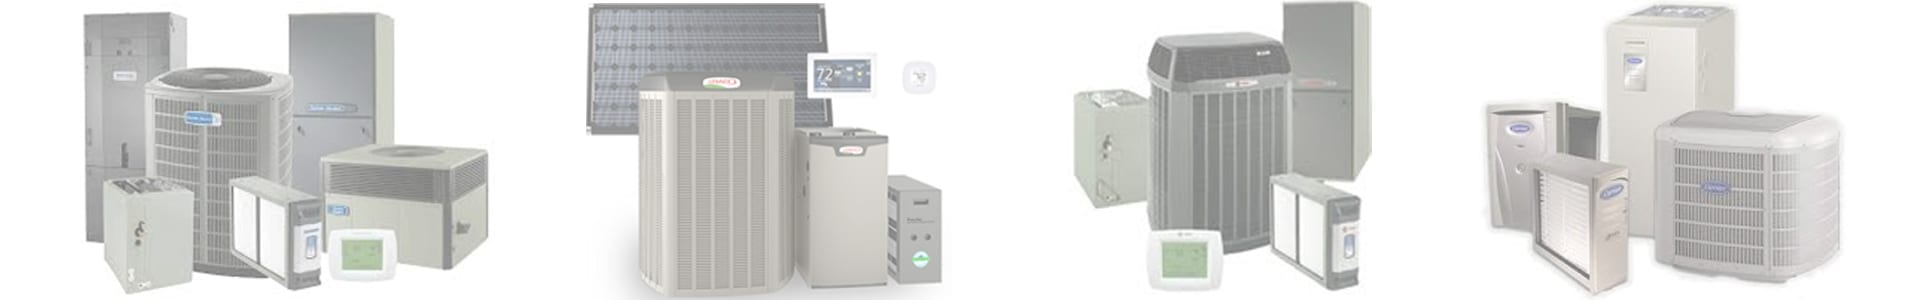 air conditionign systems